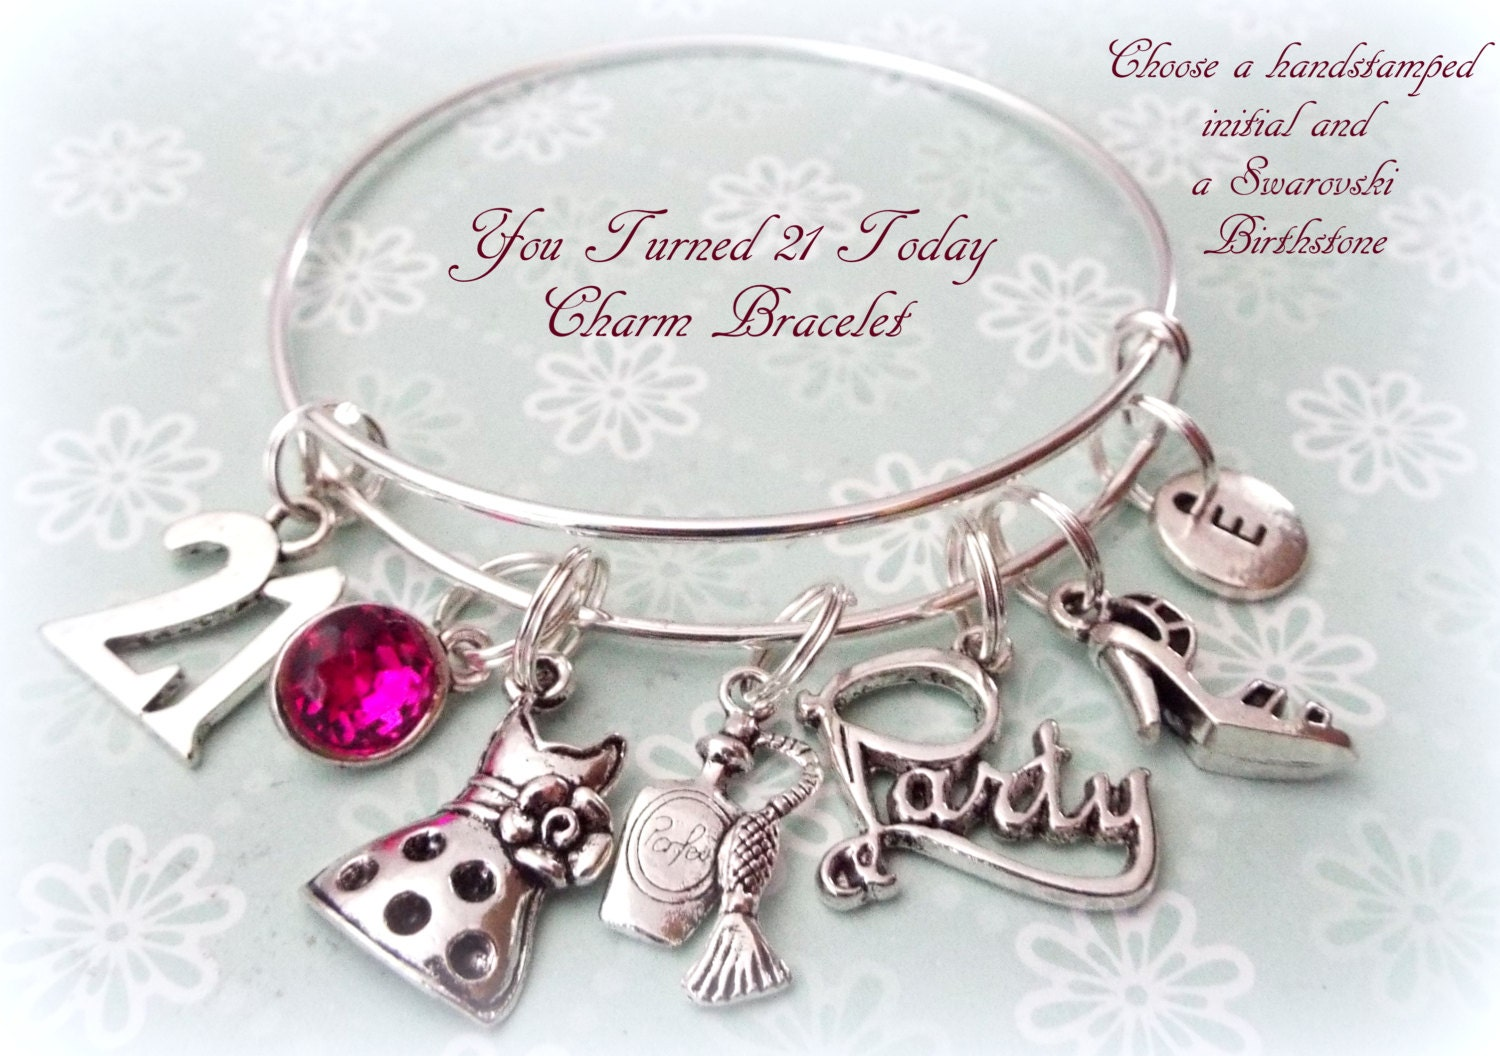 21st Birthday Gift Charm Bracelet Idea For Her Turning 21 Ideas Friend